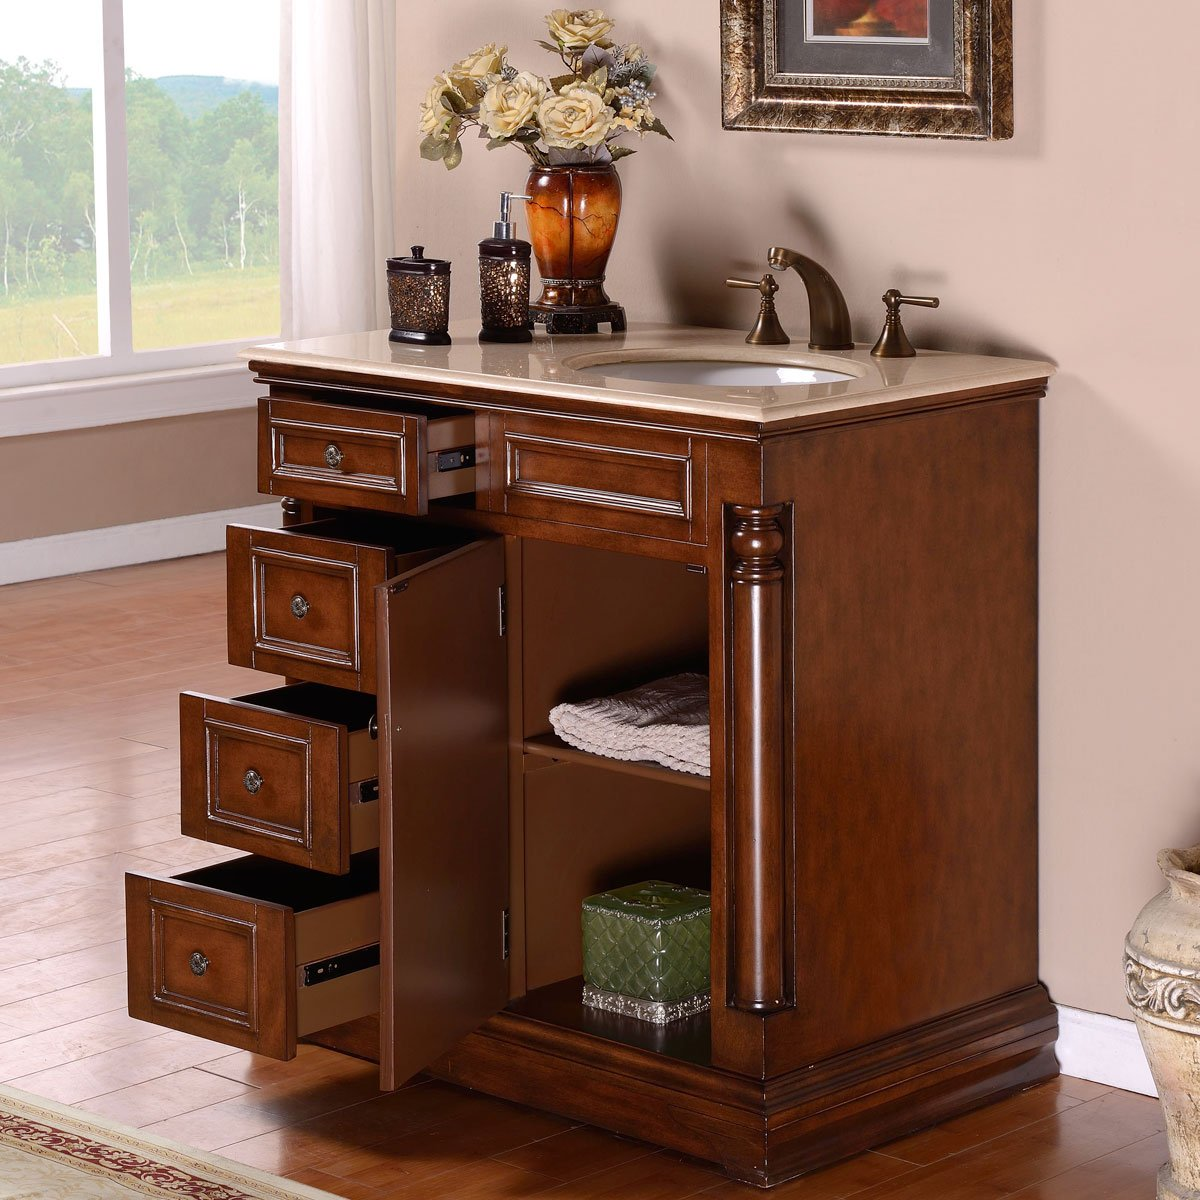 Silkroad Exclusive Single Right Sink Bathroom Vanity with Furniture Cabinet, 36-Inch by Silkroad Exclusive (Image #2)